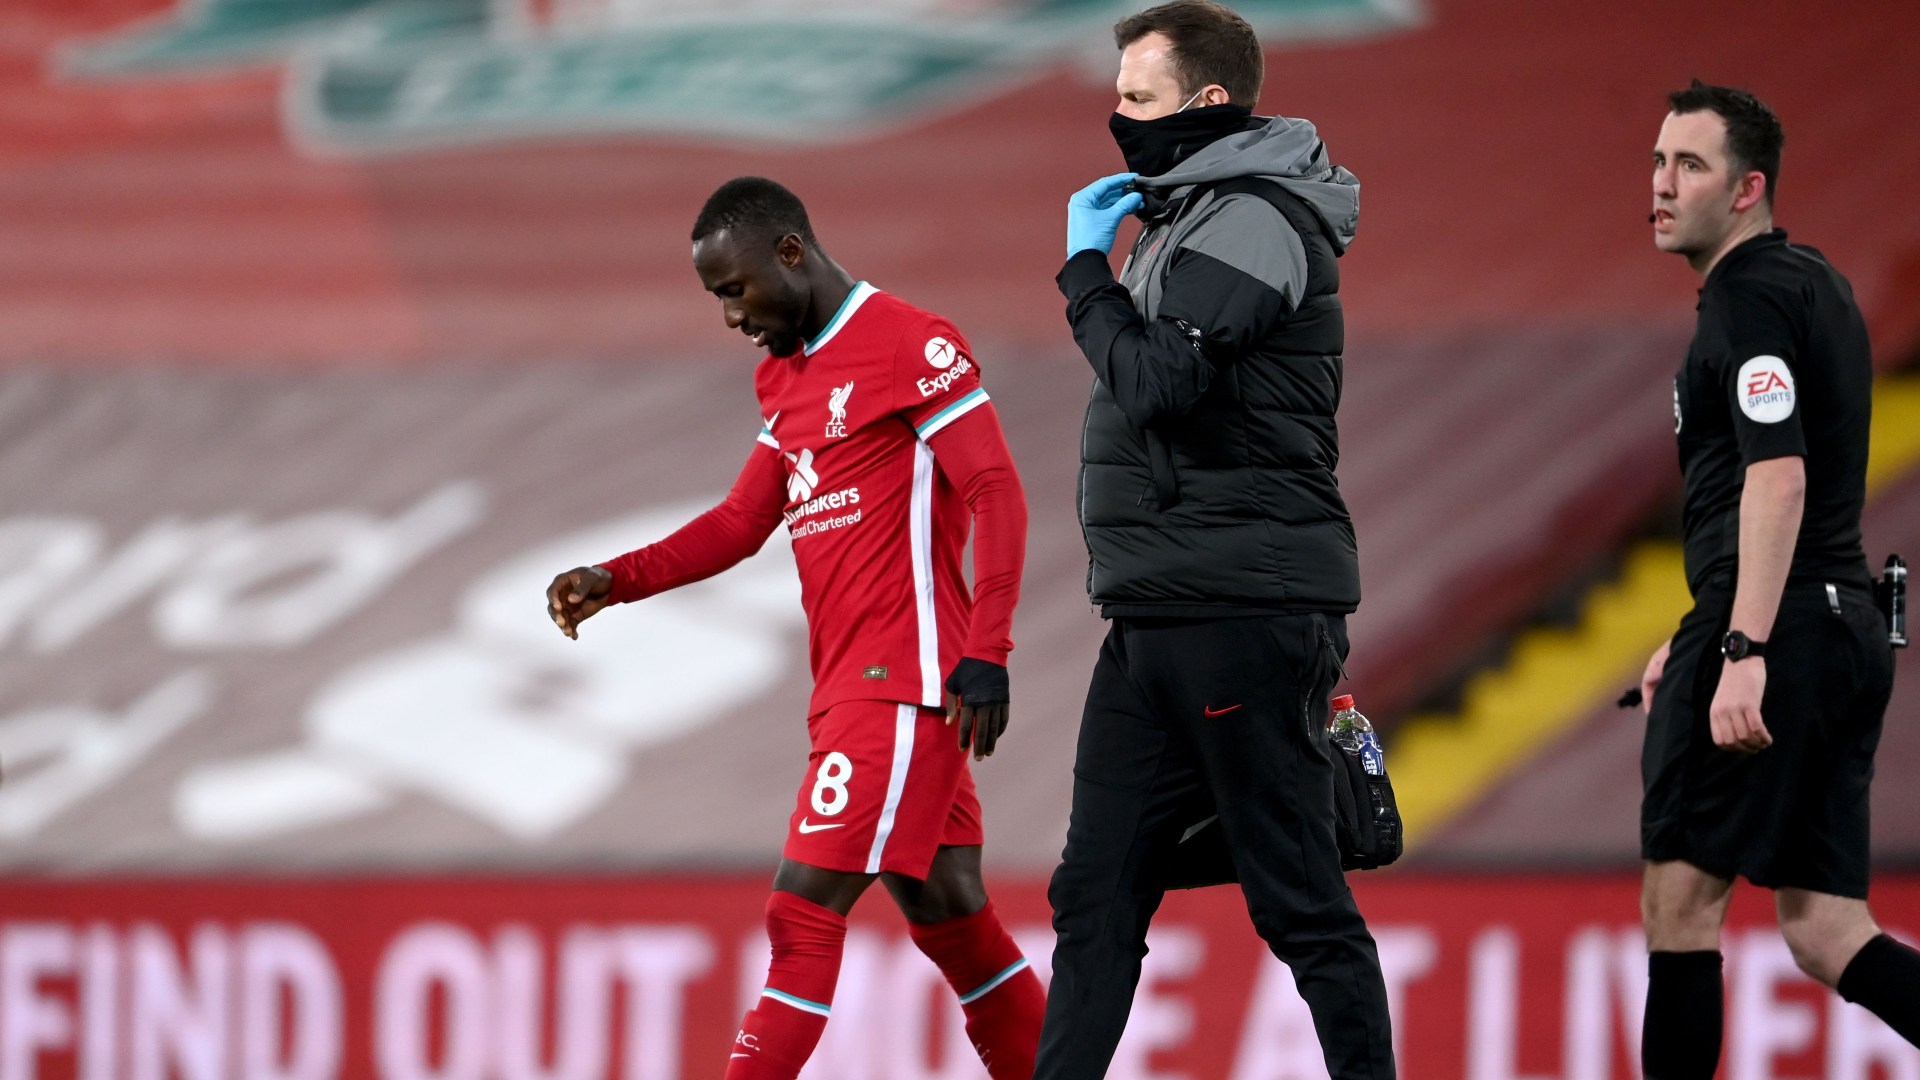 The problems will not get smaller' - Klopp rues Keita injury as Liverpool's  list of unavailable players grows | Goal.com